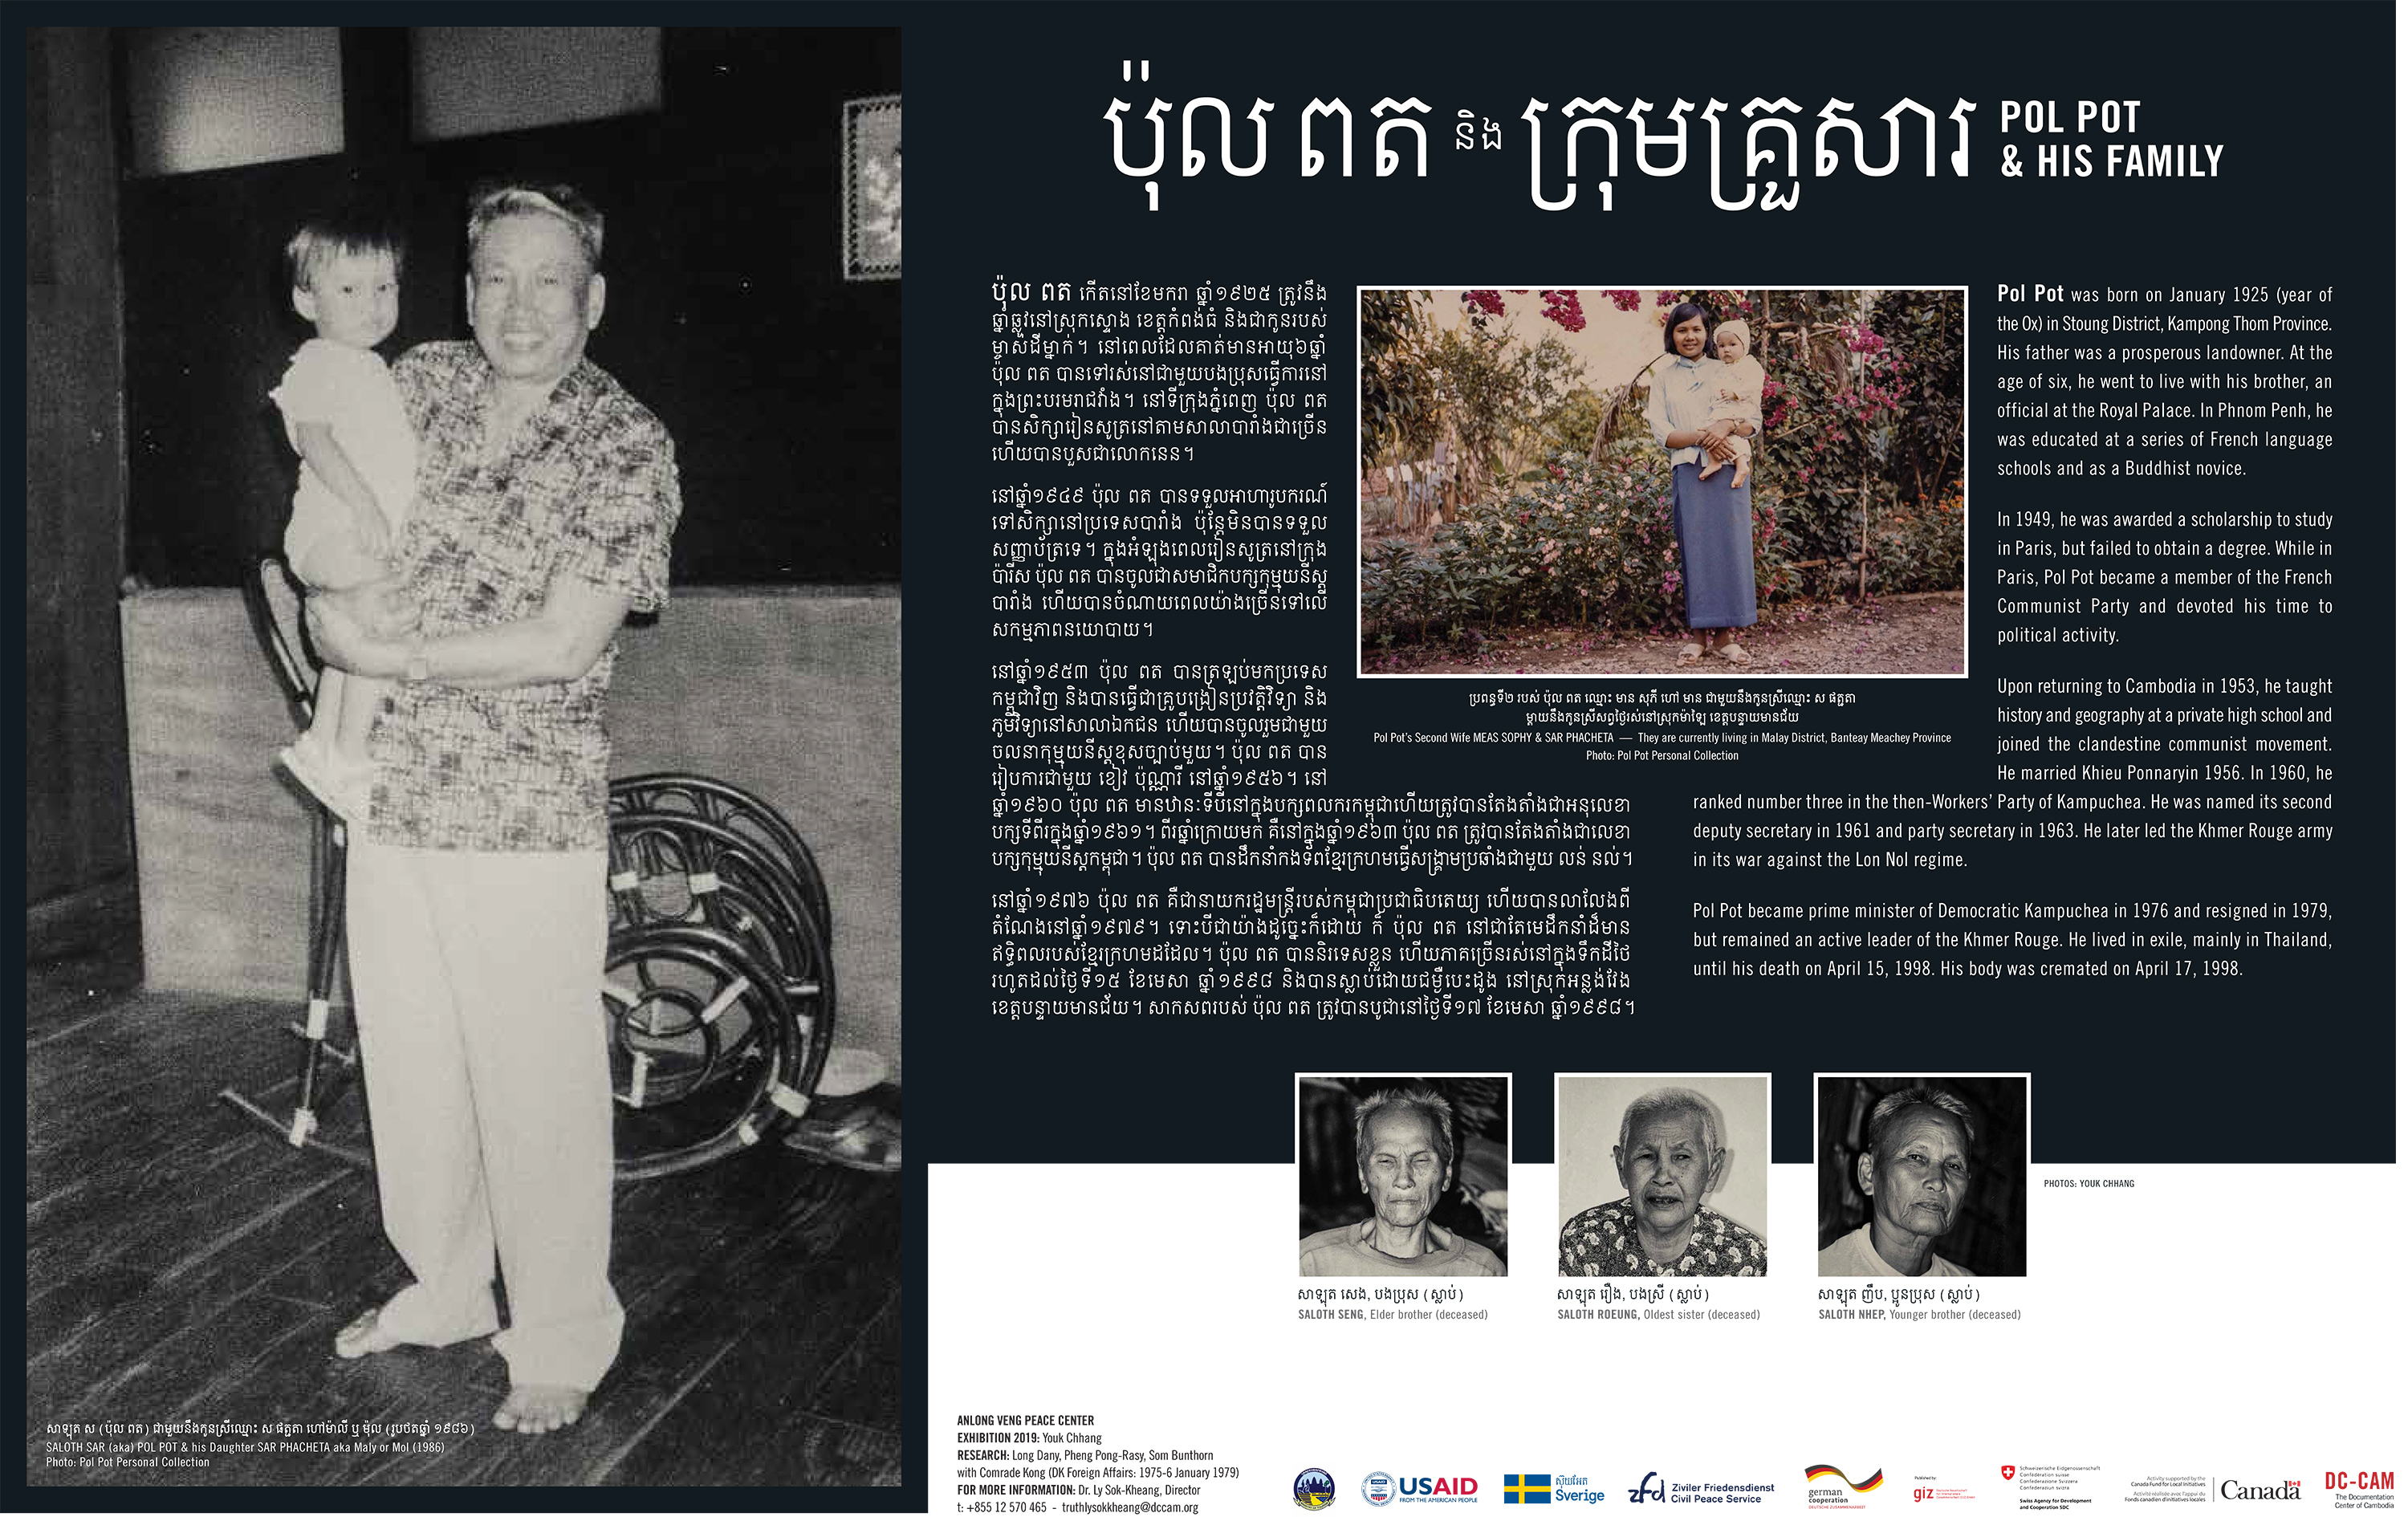 A_Pol Pot _Biography_LV10